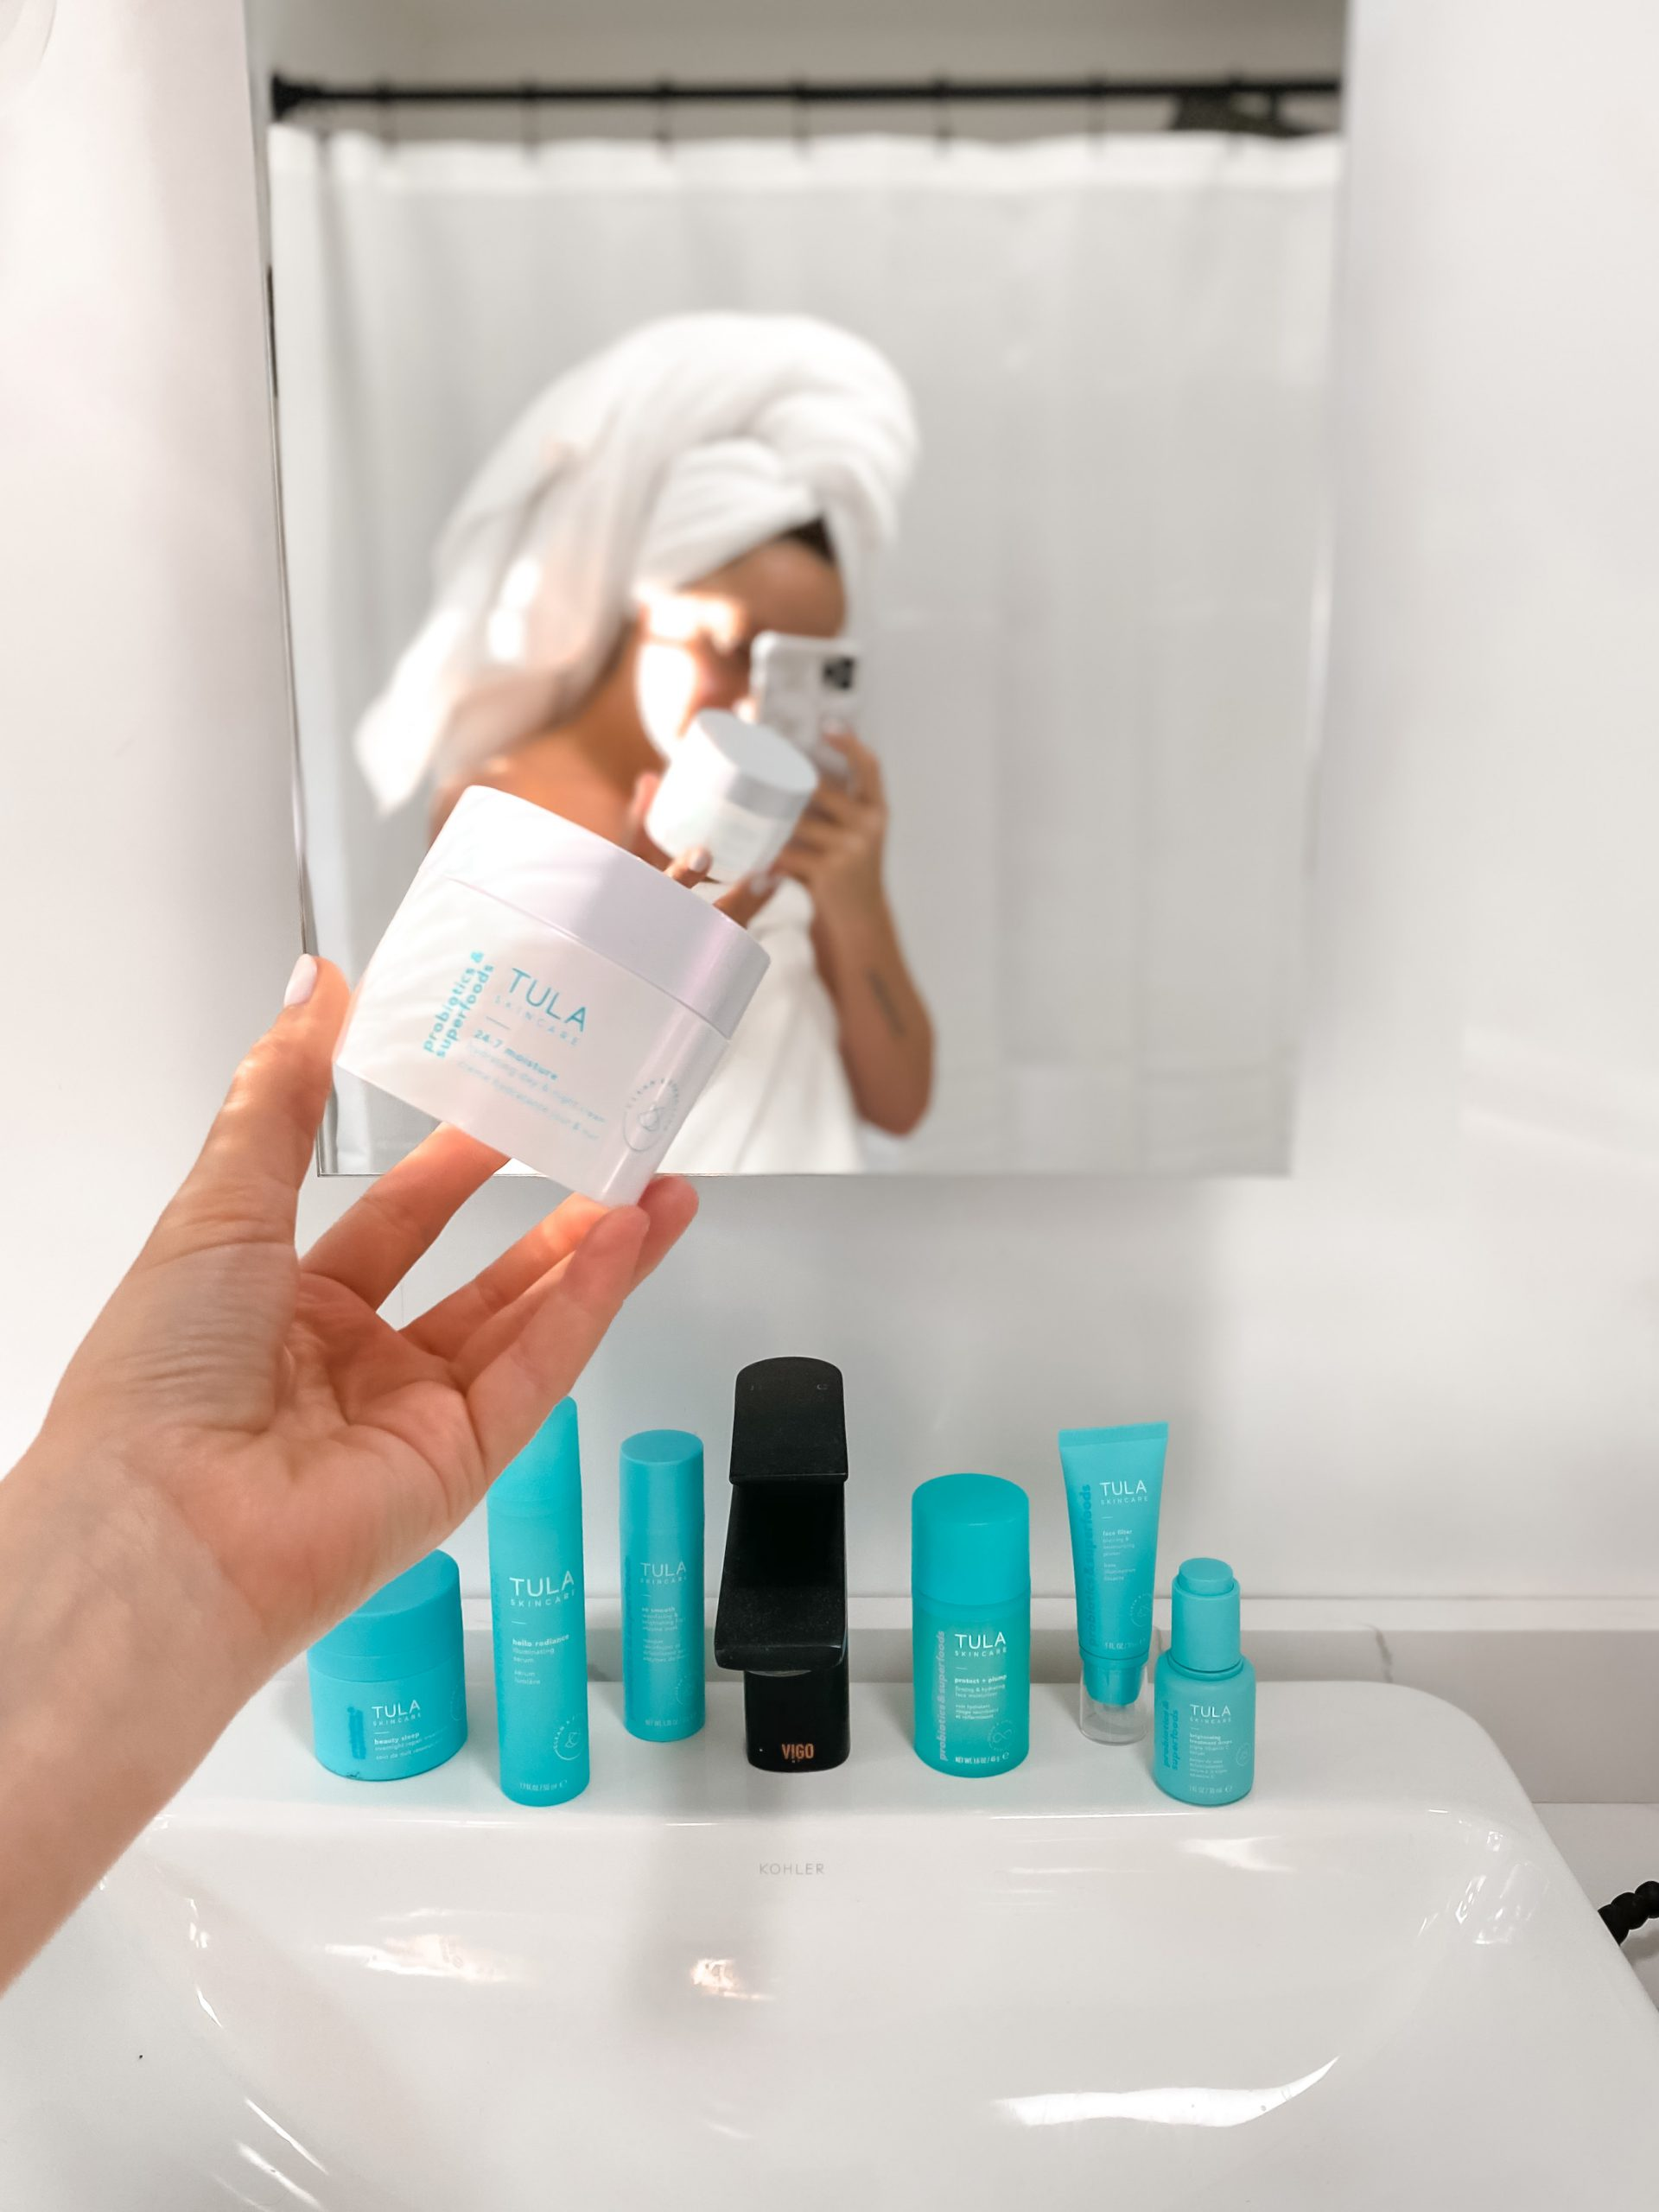 Why I am Changing Up My Skincare in 2021 | Why I Decided to Give TULA a Go!